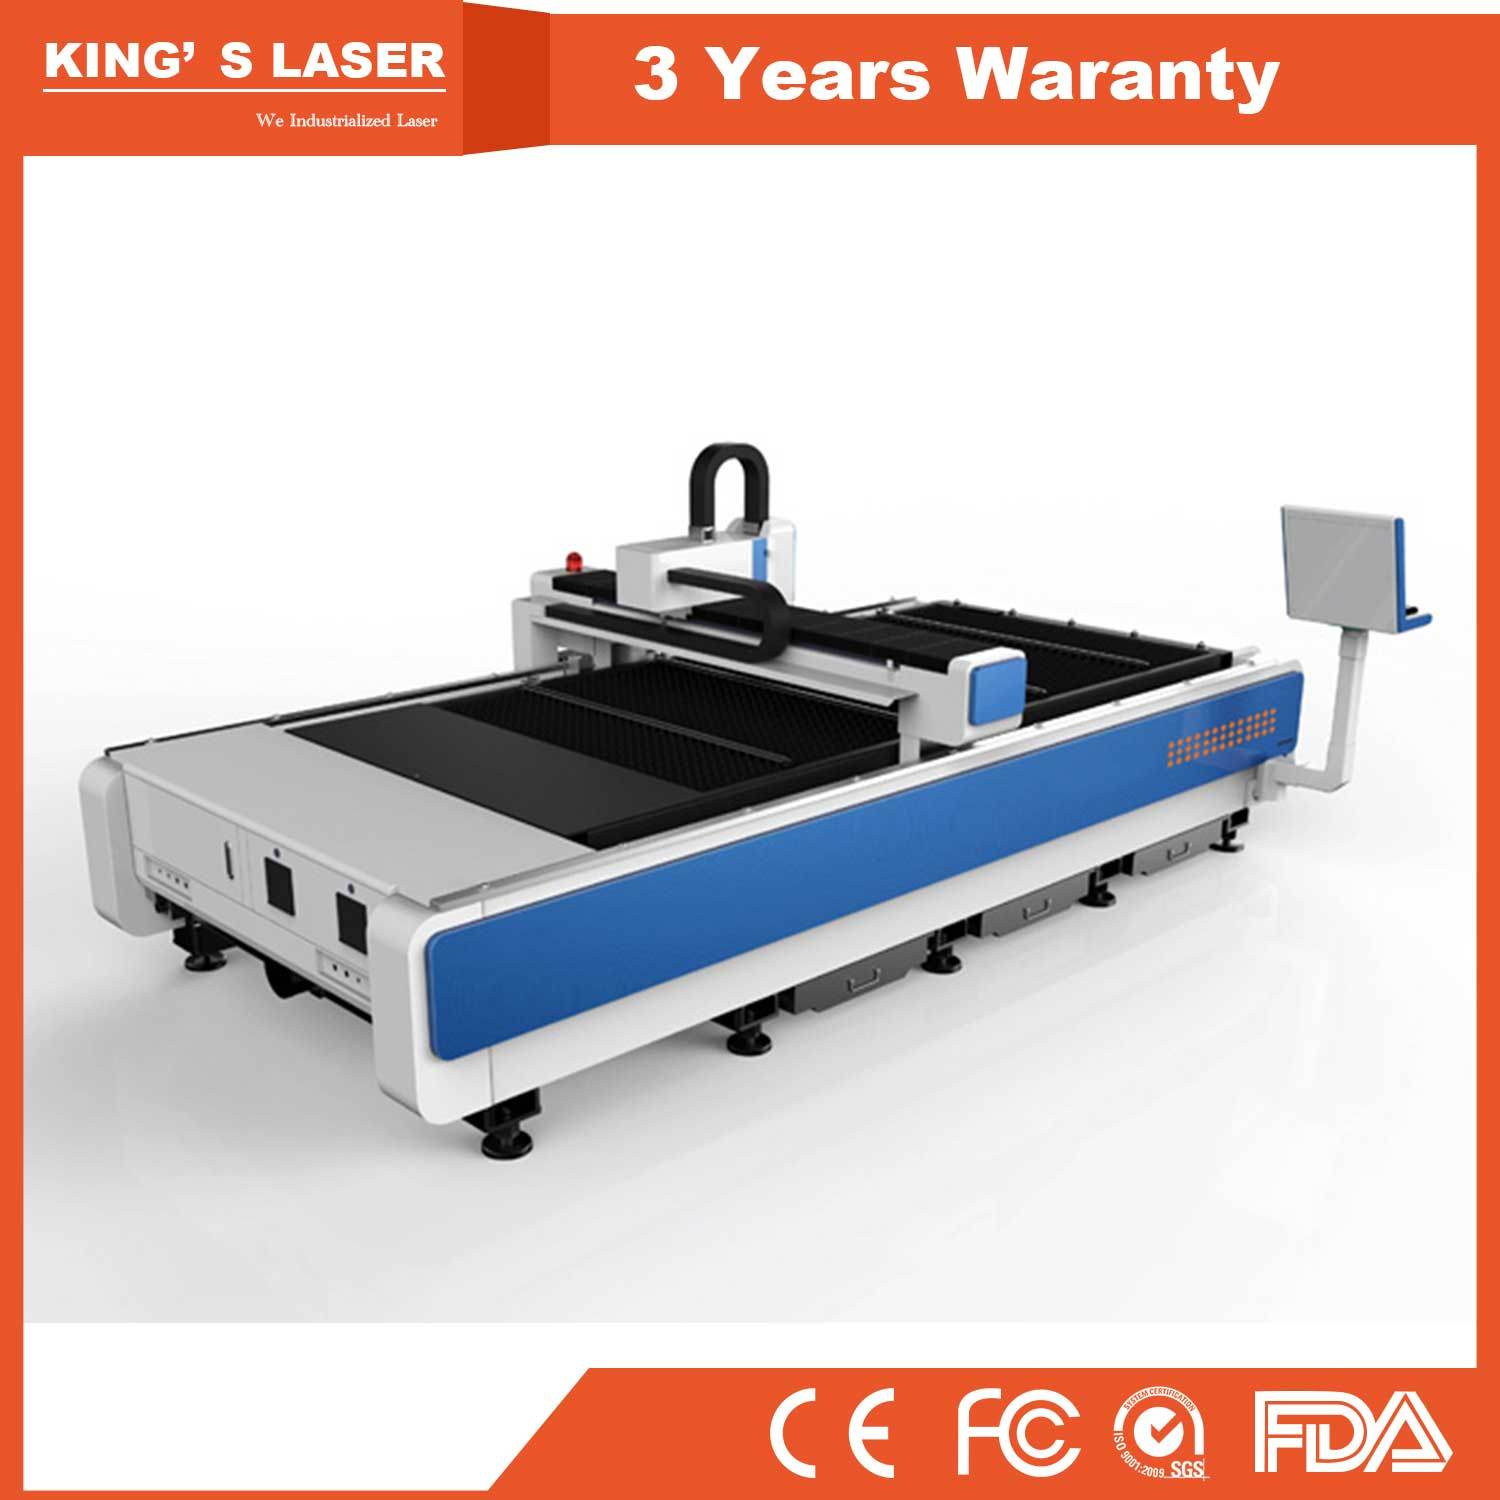 Laser Cutting Machine Metal Hot Item Cast Iron Machine Body Fiber Laser Cutting Machine Metal Cnc Laser Cutter For Model Free Sample